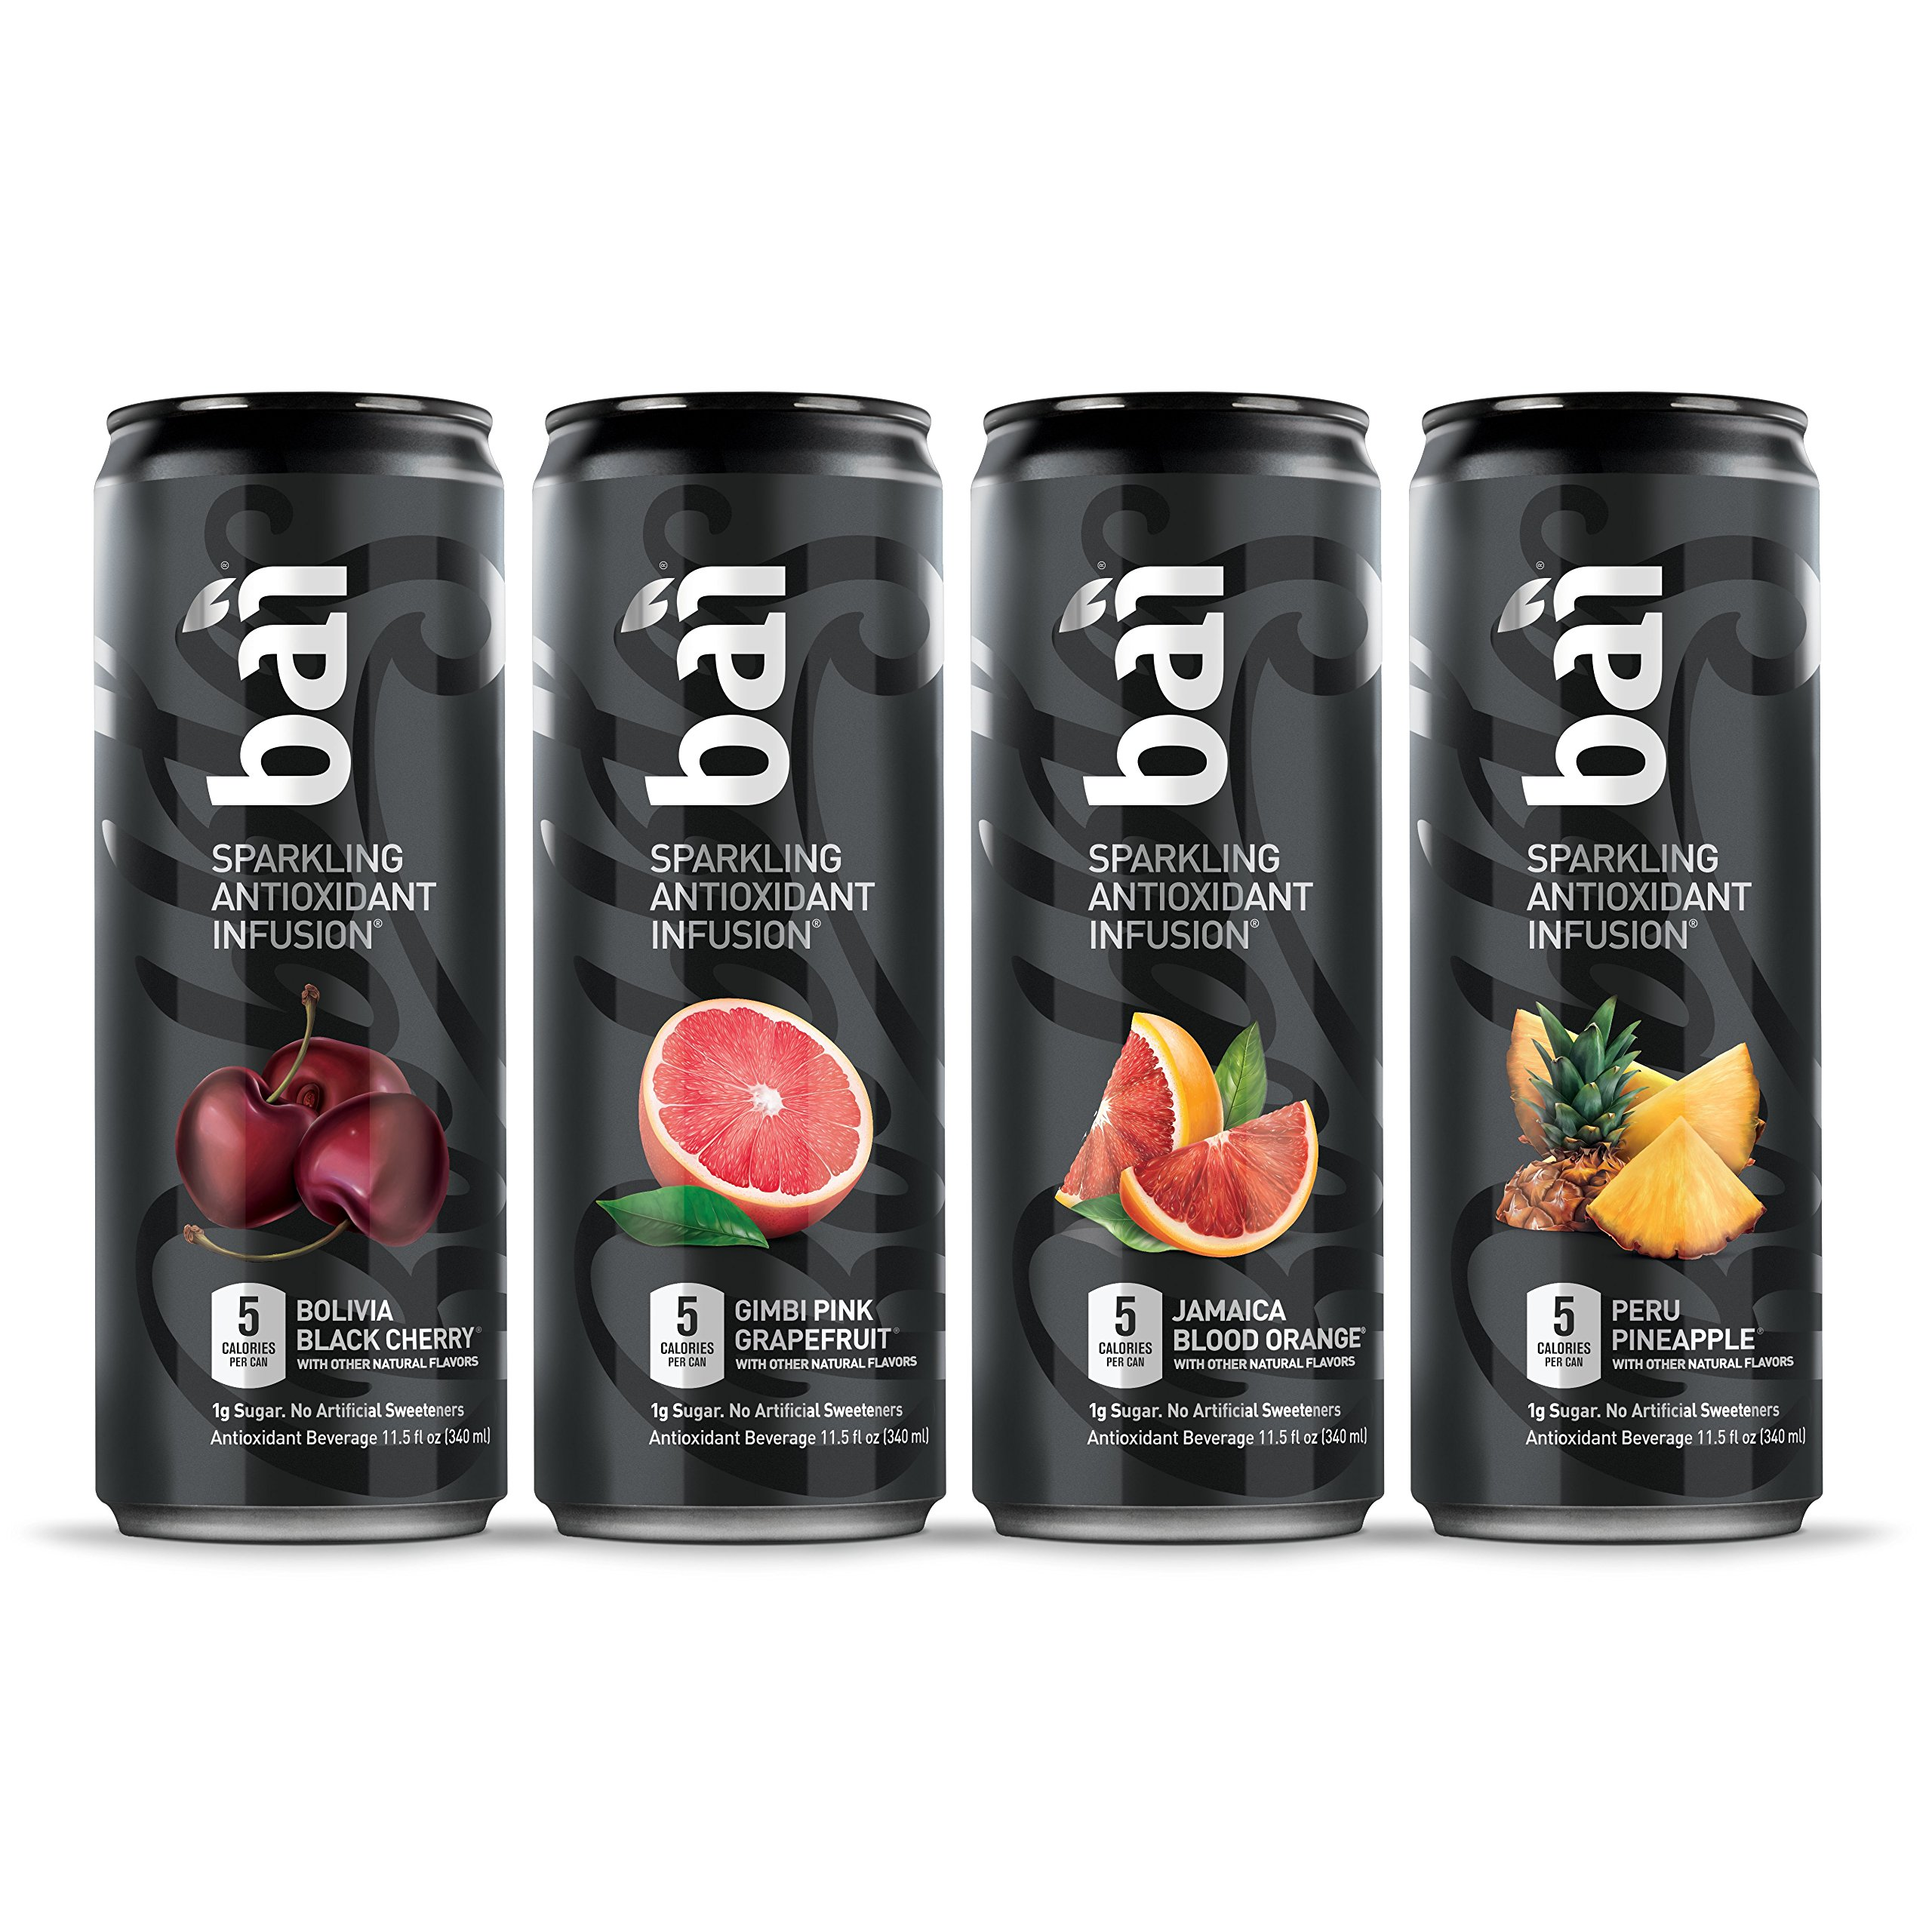 Bai Bubbles Variety Pack, Sparkling Antioxidant Infused Beverage, 11.5 Fluid Ounce Cans, 12 count (Packaging May Vary)